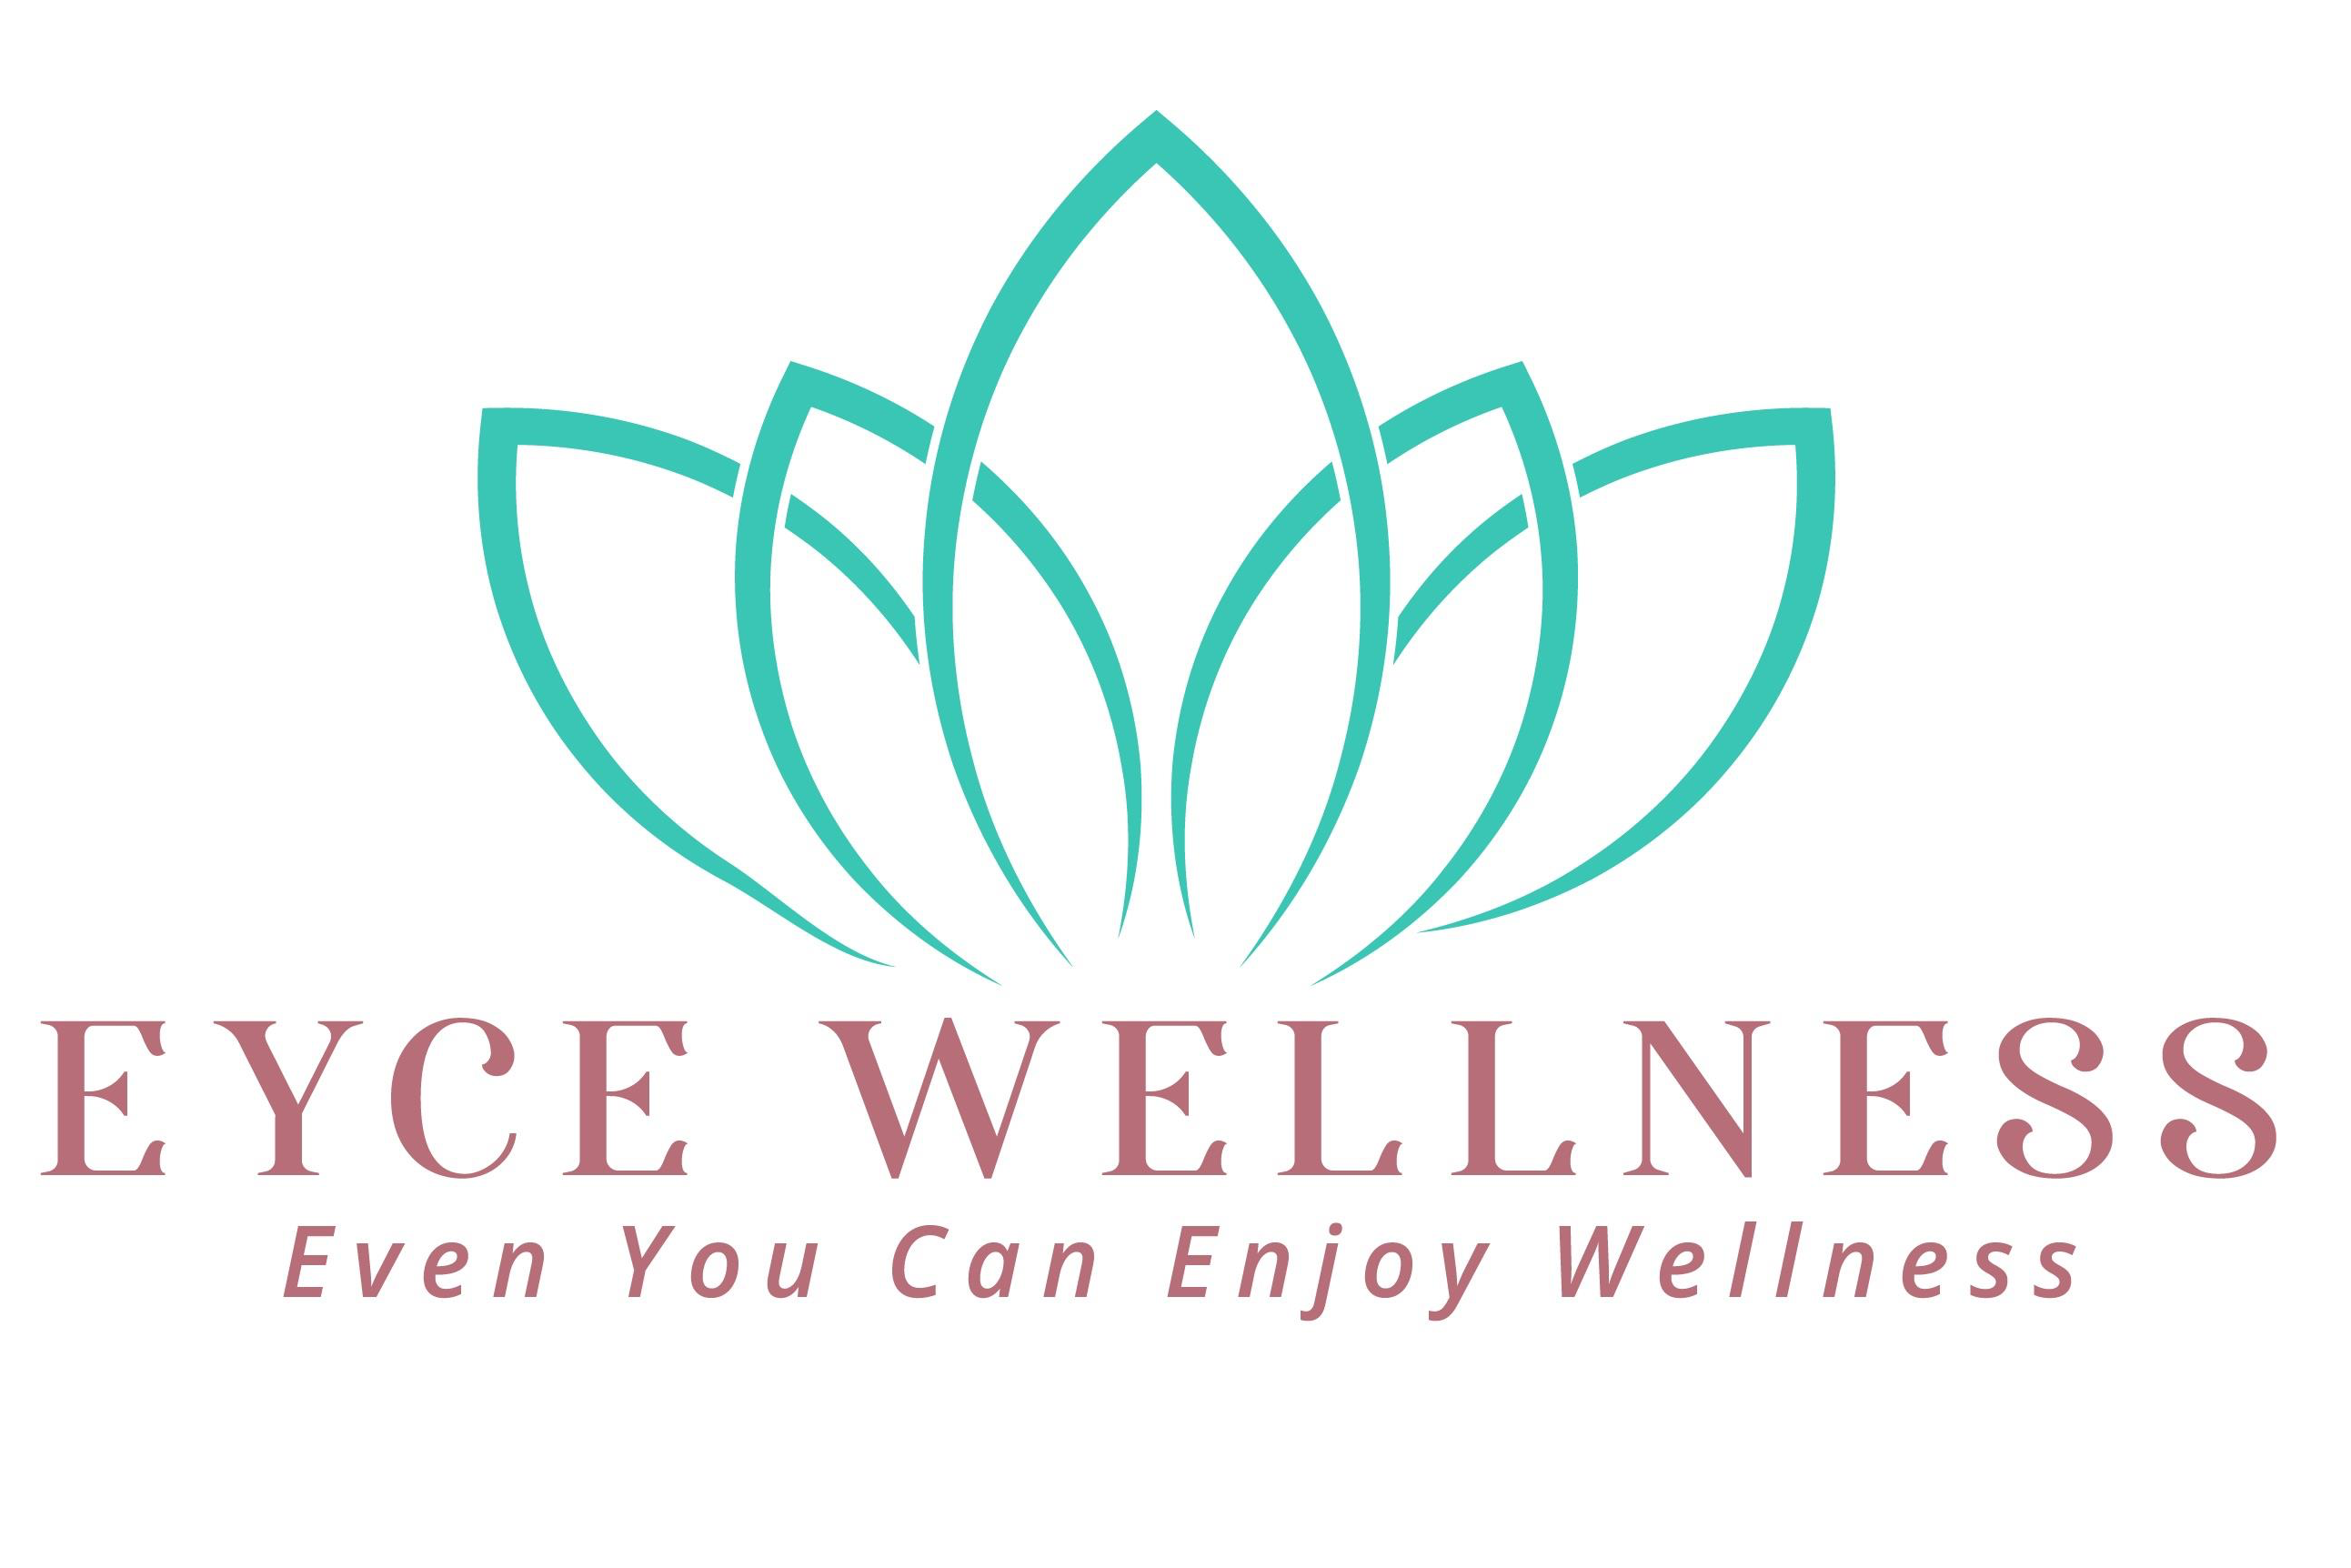 Eyce Wellness About Us Image